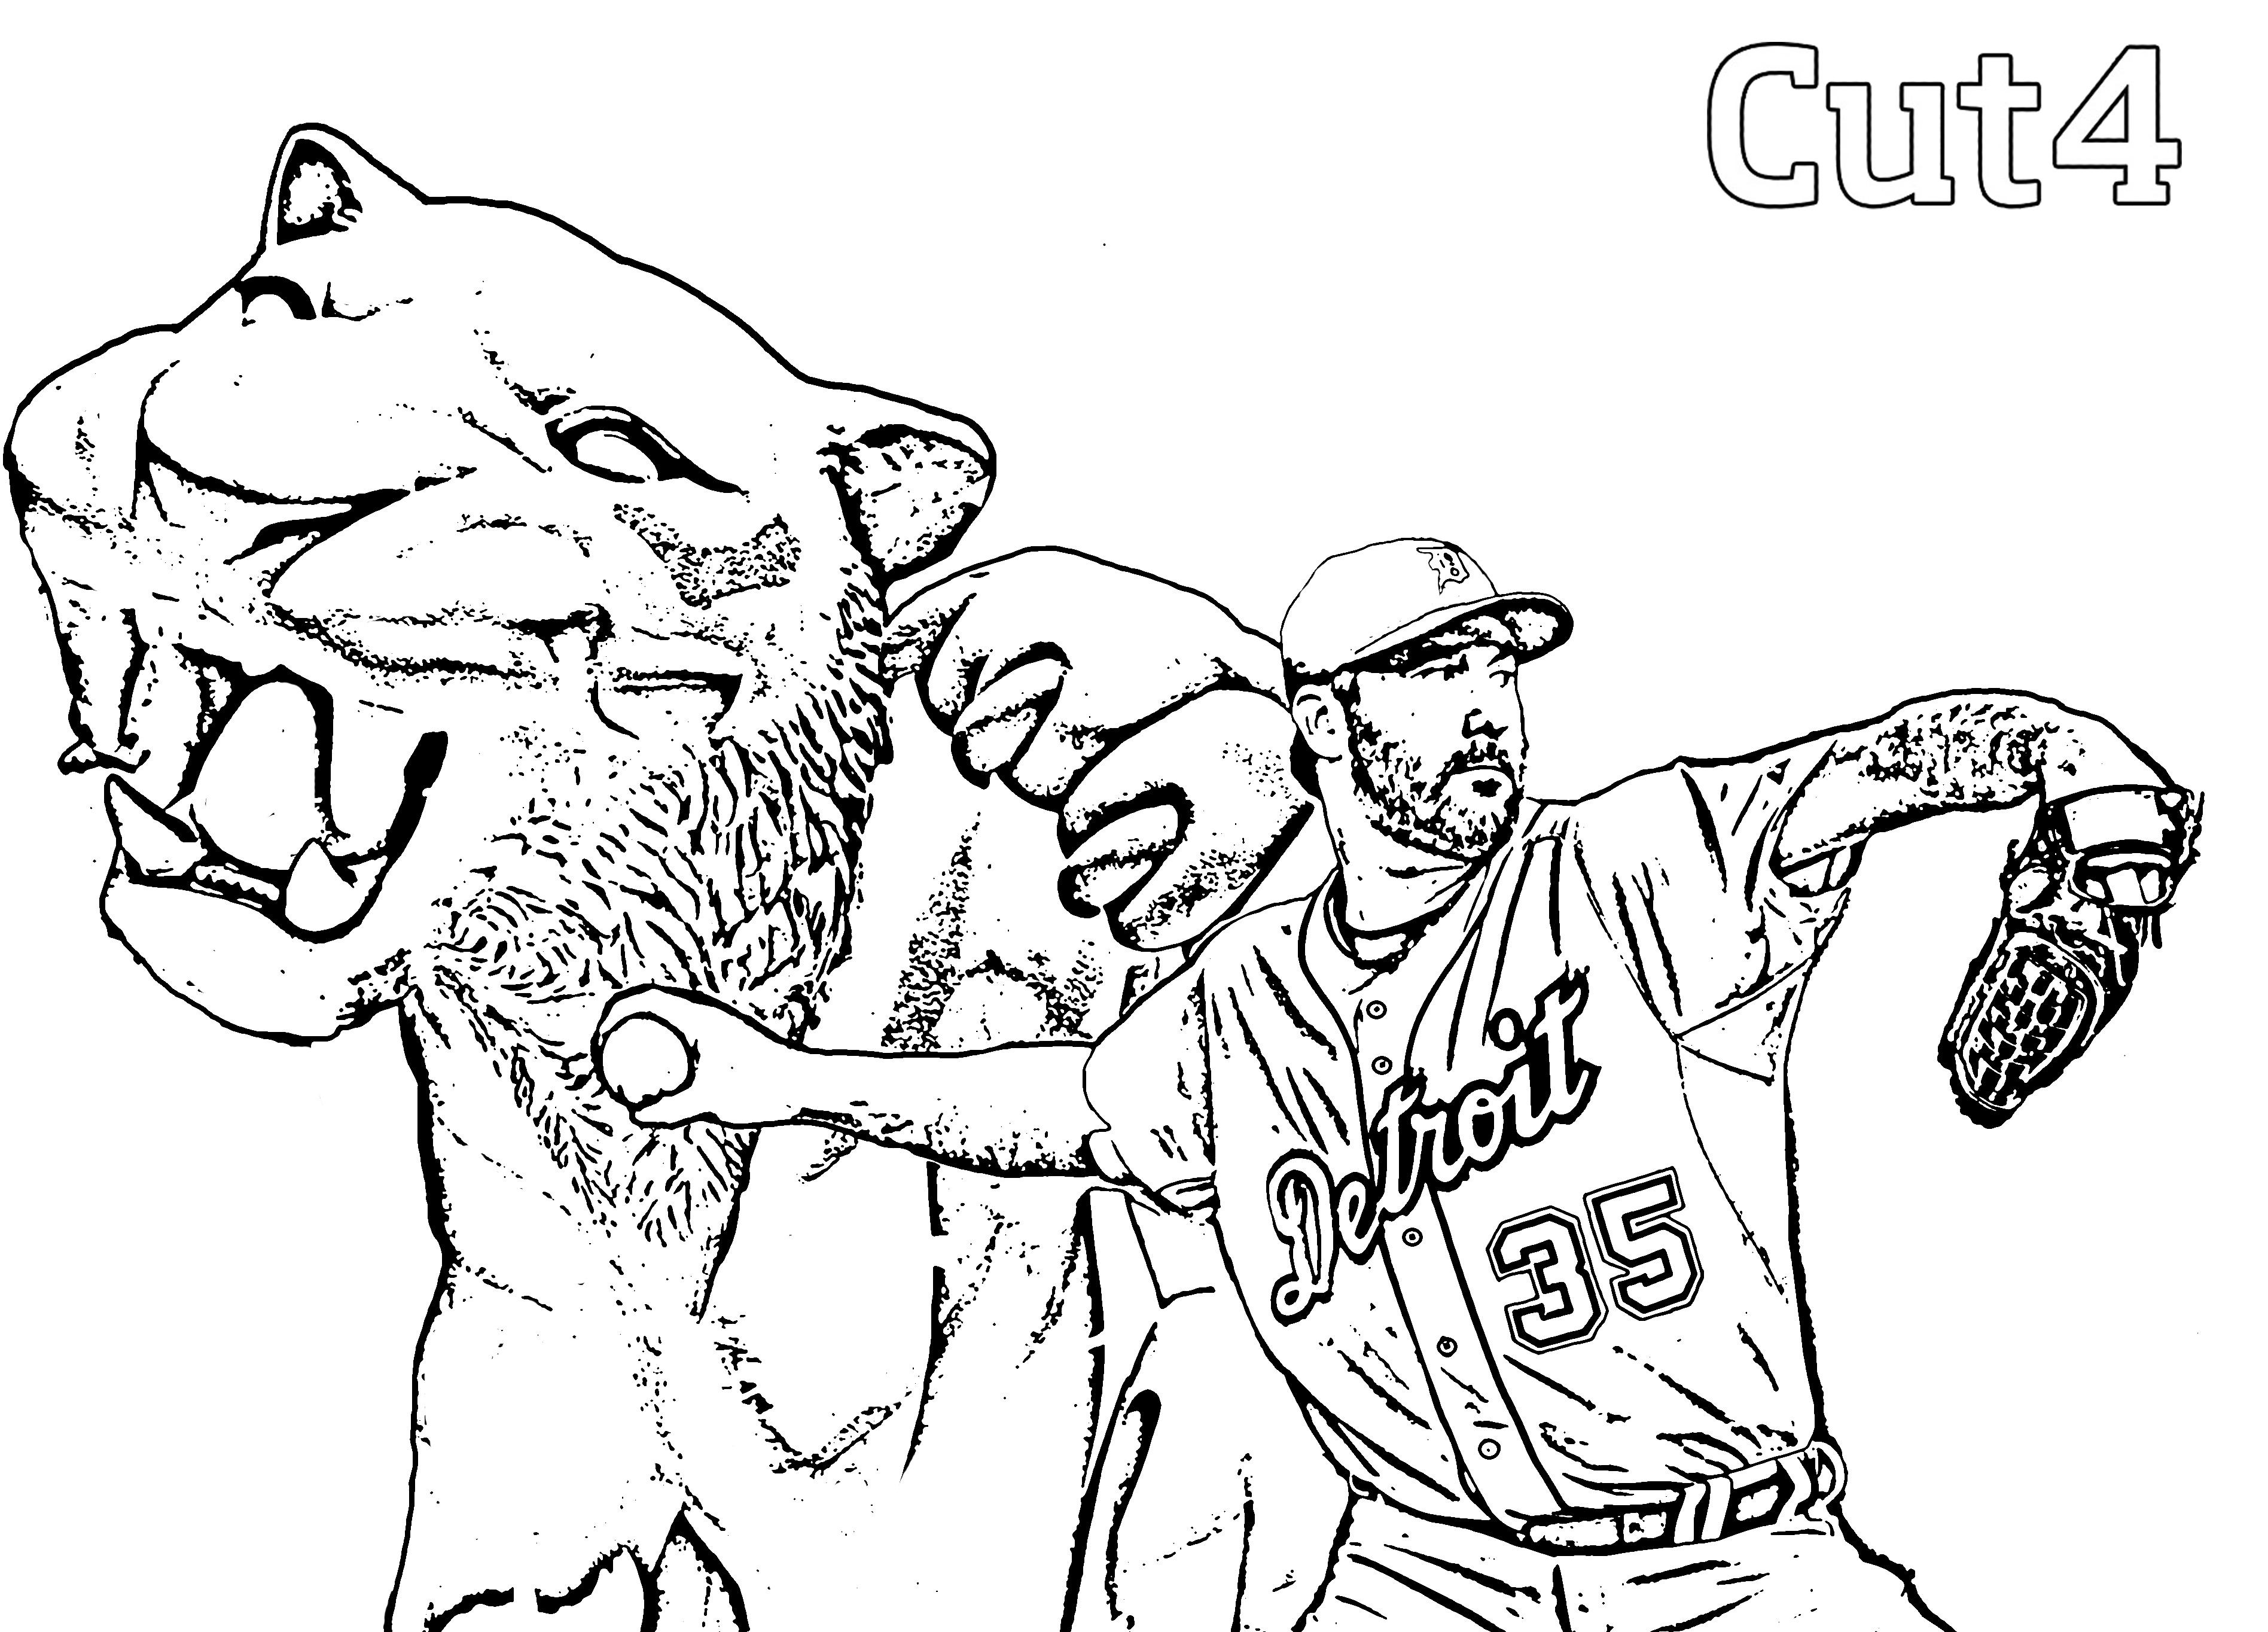 detroit tiger coloring pages - photo#5